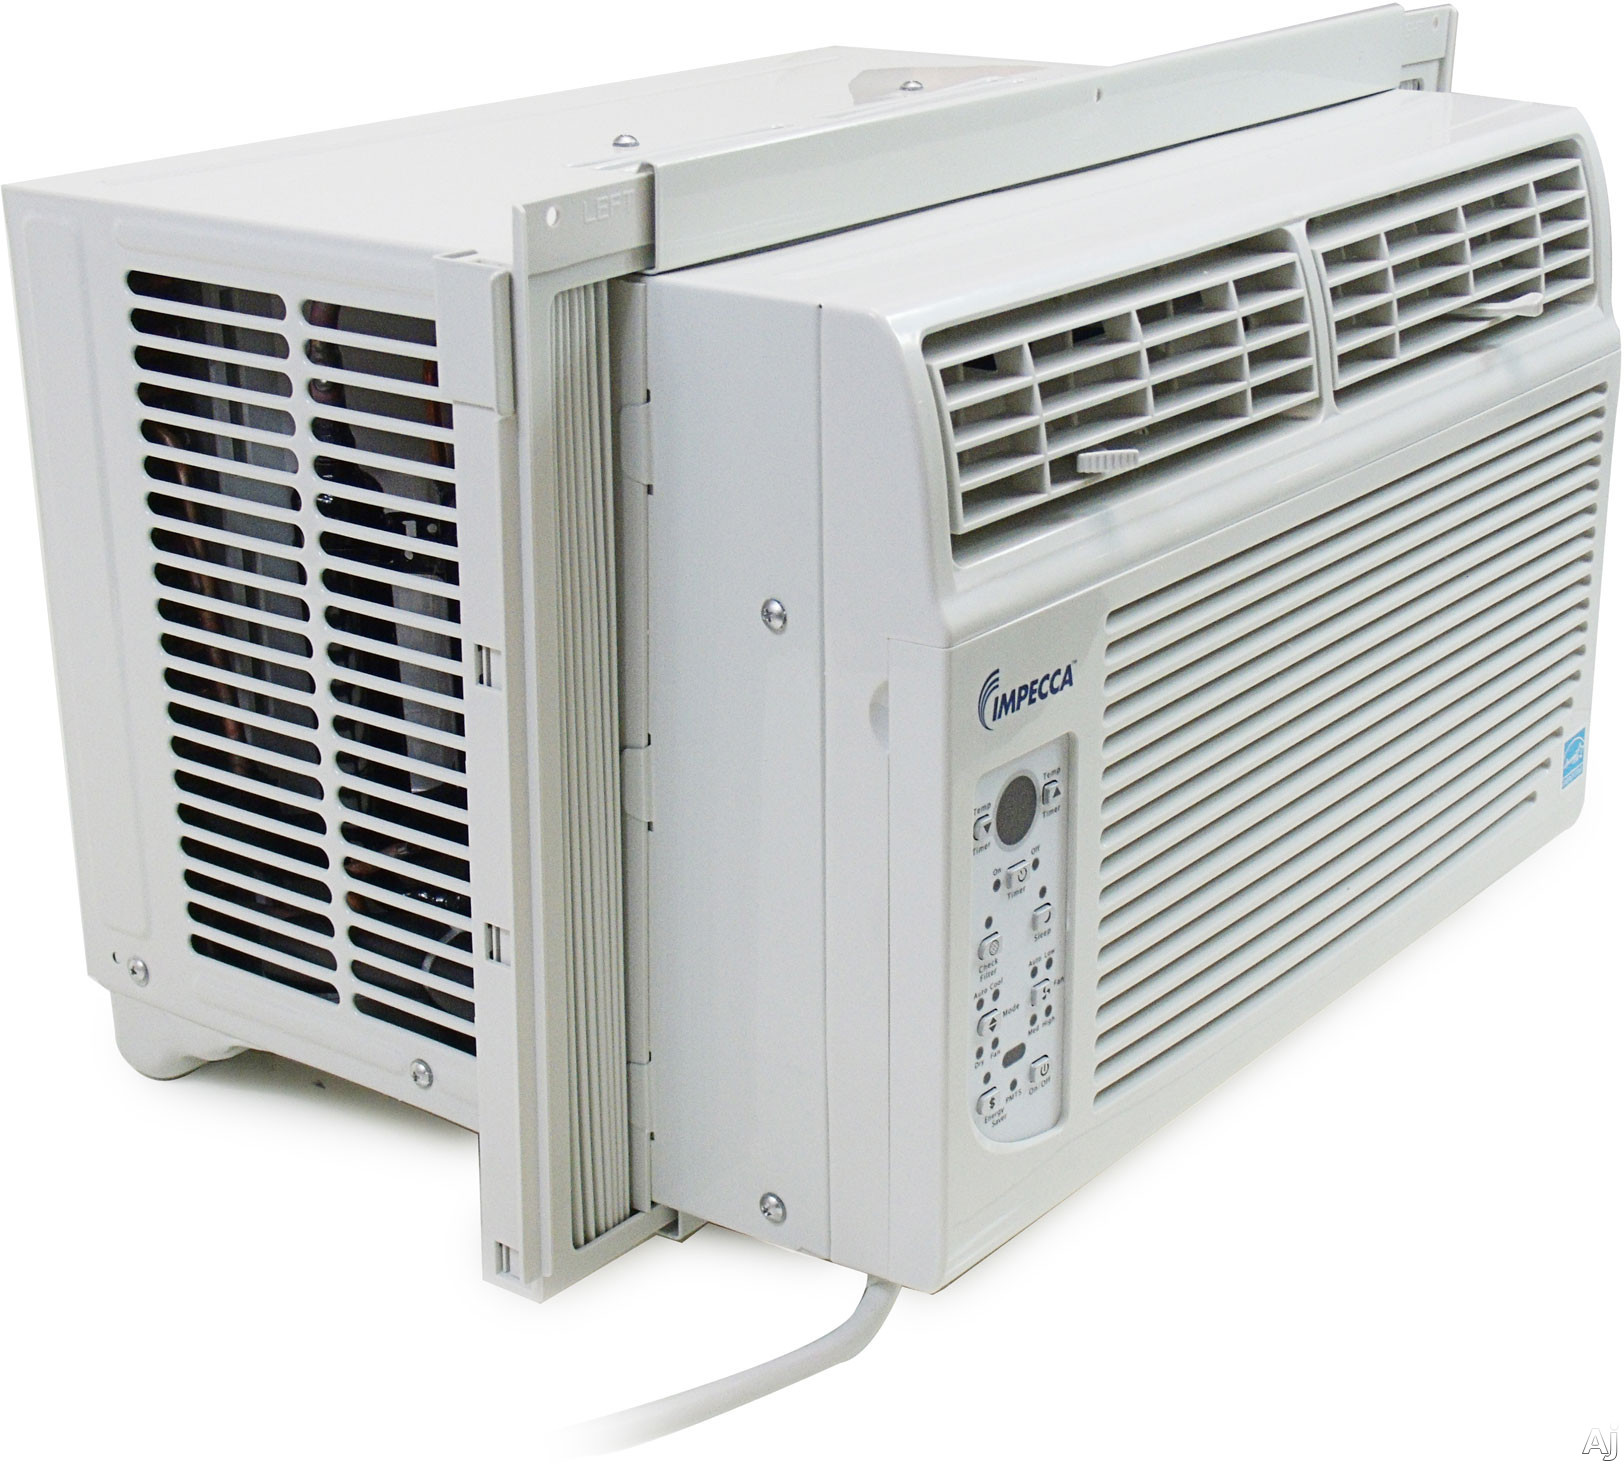 Impecca IWA10KSFP 10 000 BTU Window Air Conditioner with 10.8 EER R  #484F5B